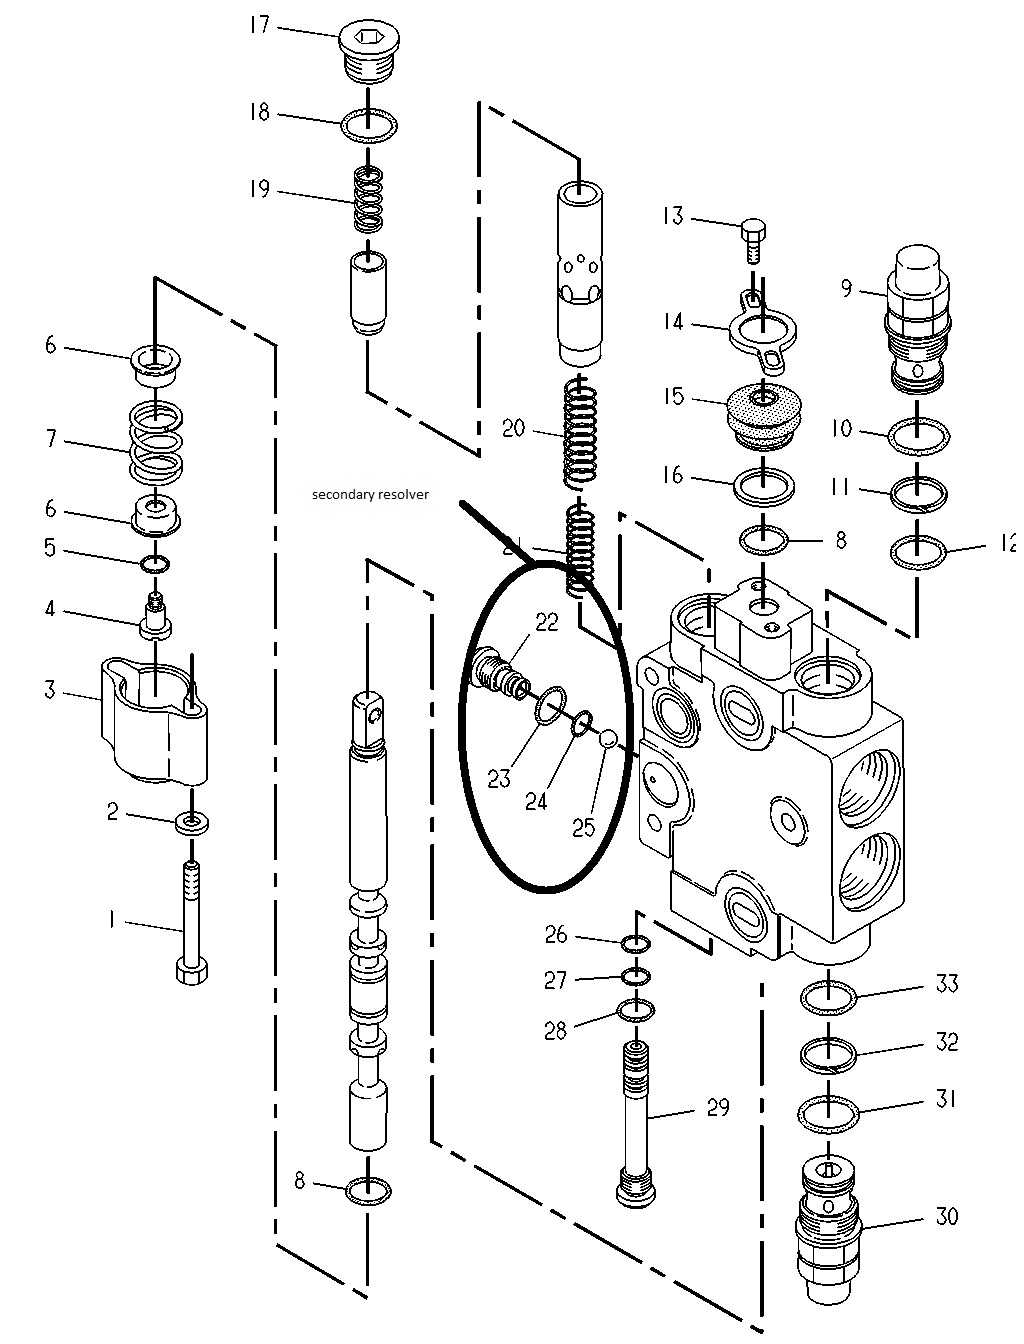 2011 04 06_235134_boom_valve cat 426 serial is 7bc1xxxx all hydraulic functions front and back cat 426b backhoe wiring diagram at panicattacktreatment.co